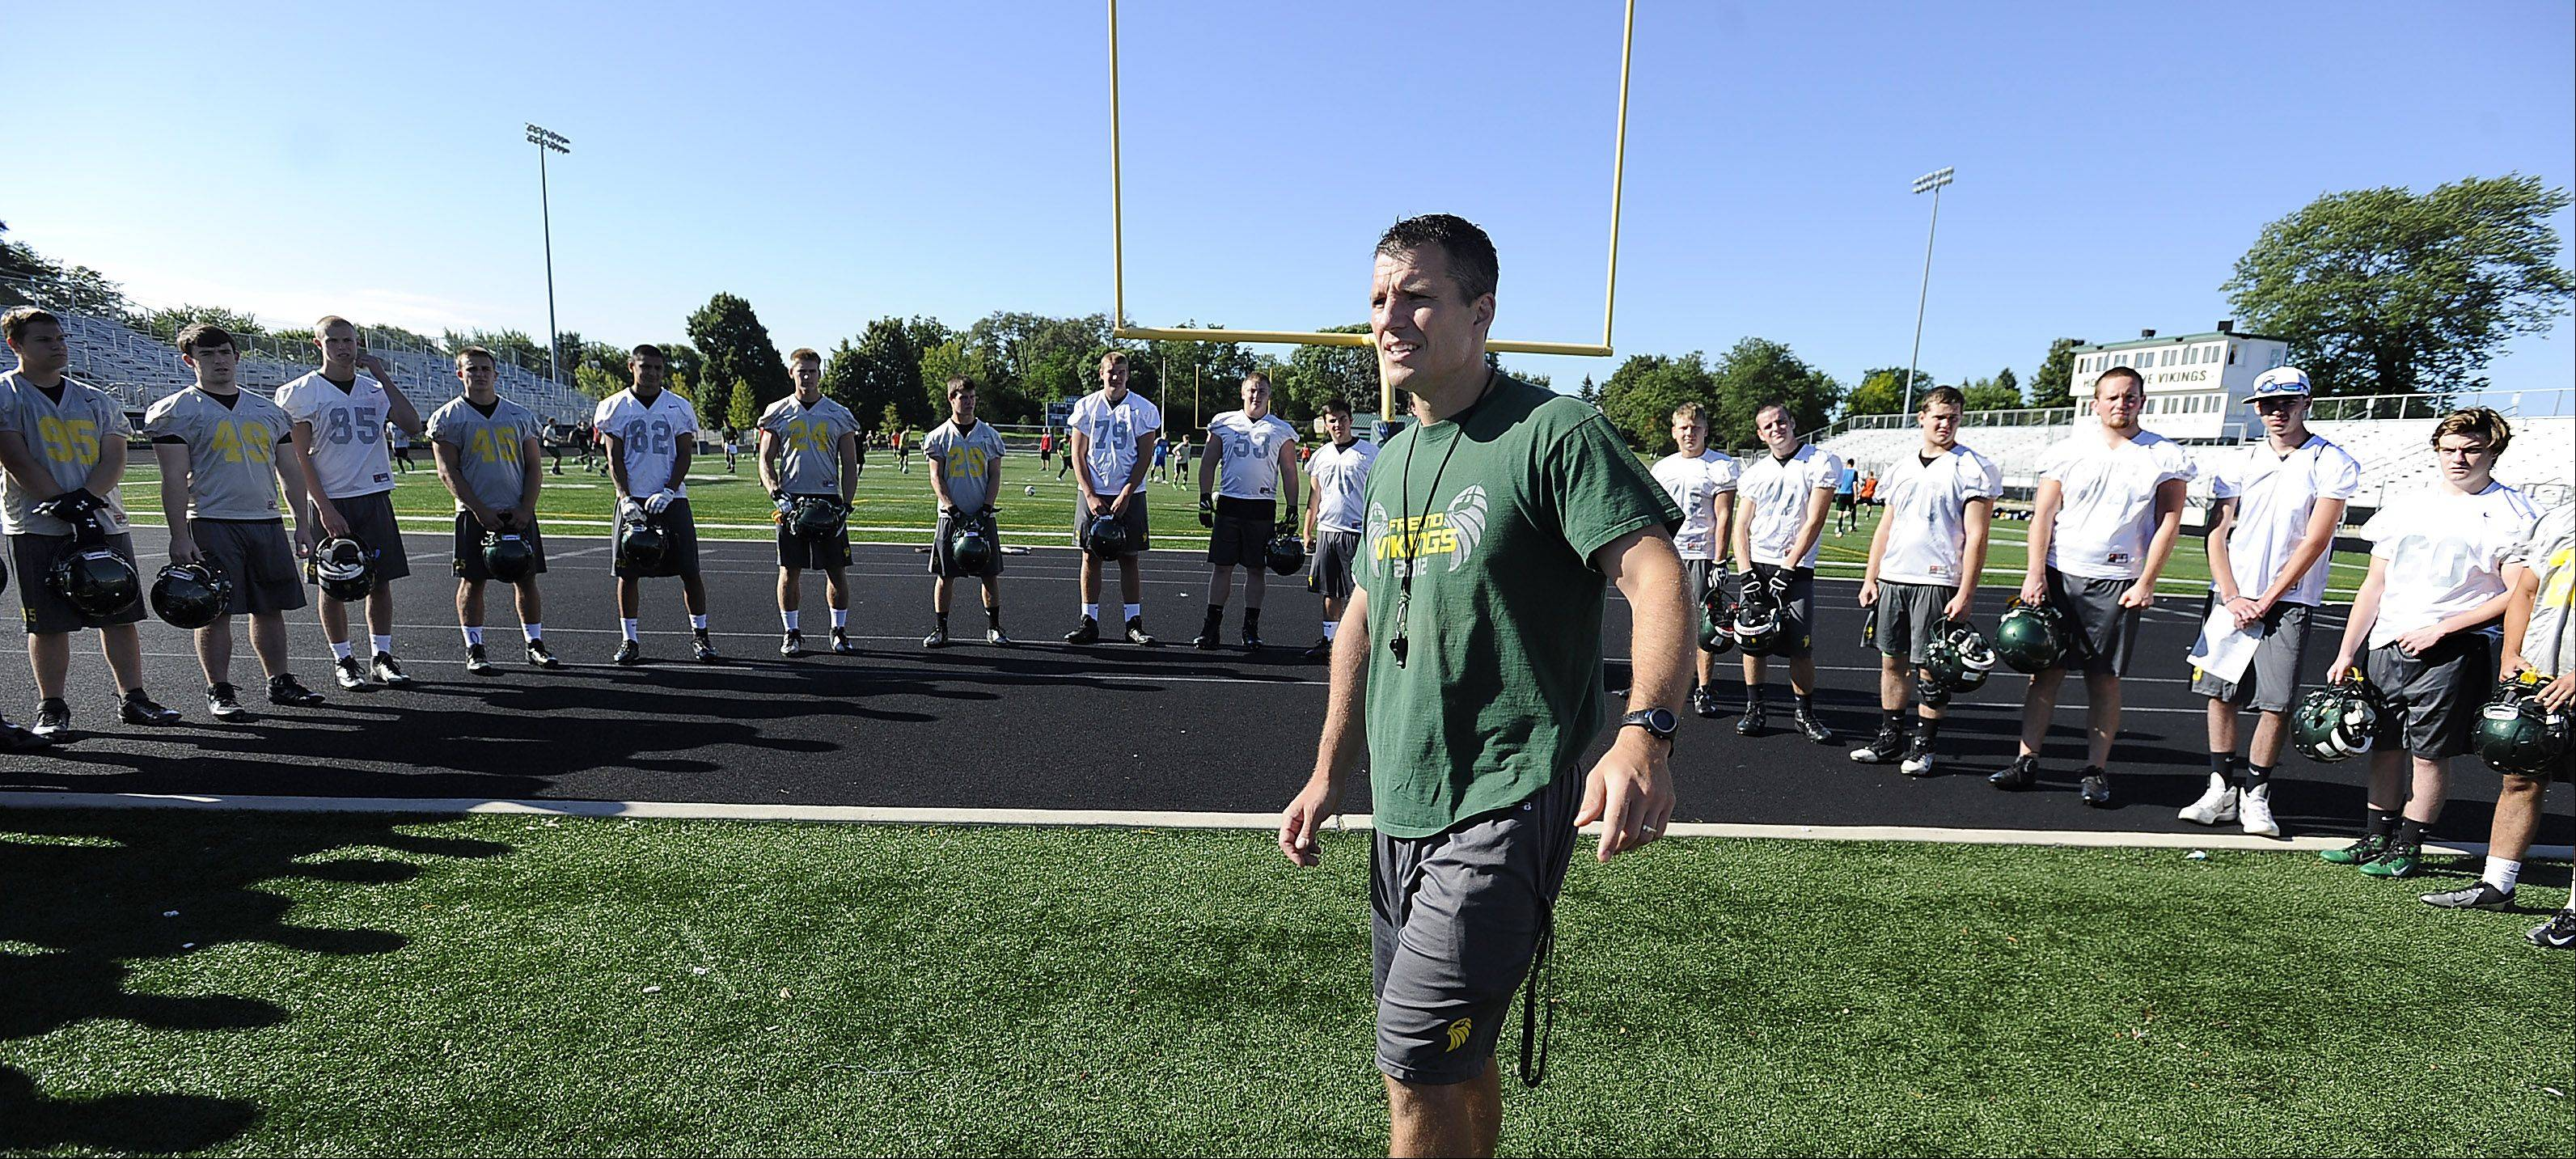 Coach Lou Sponsel works with his players at Fremd on the first day of official practice for the 2013 season.